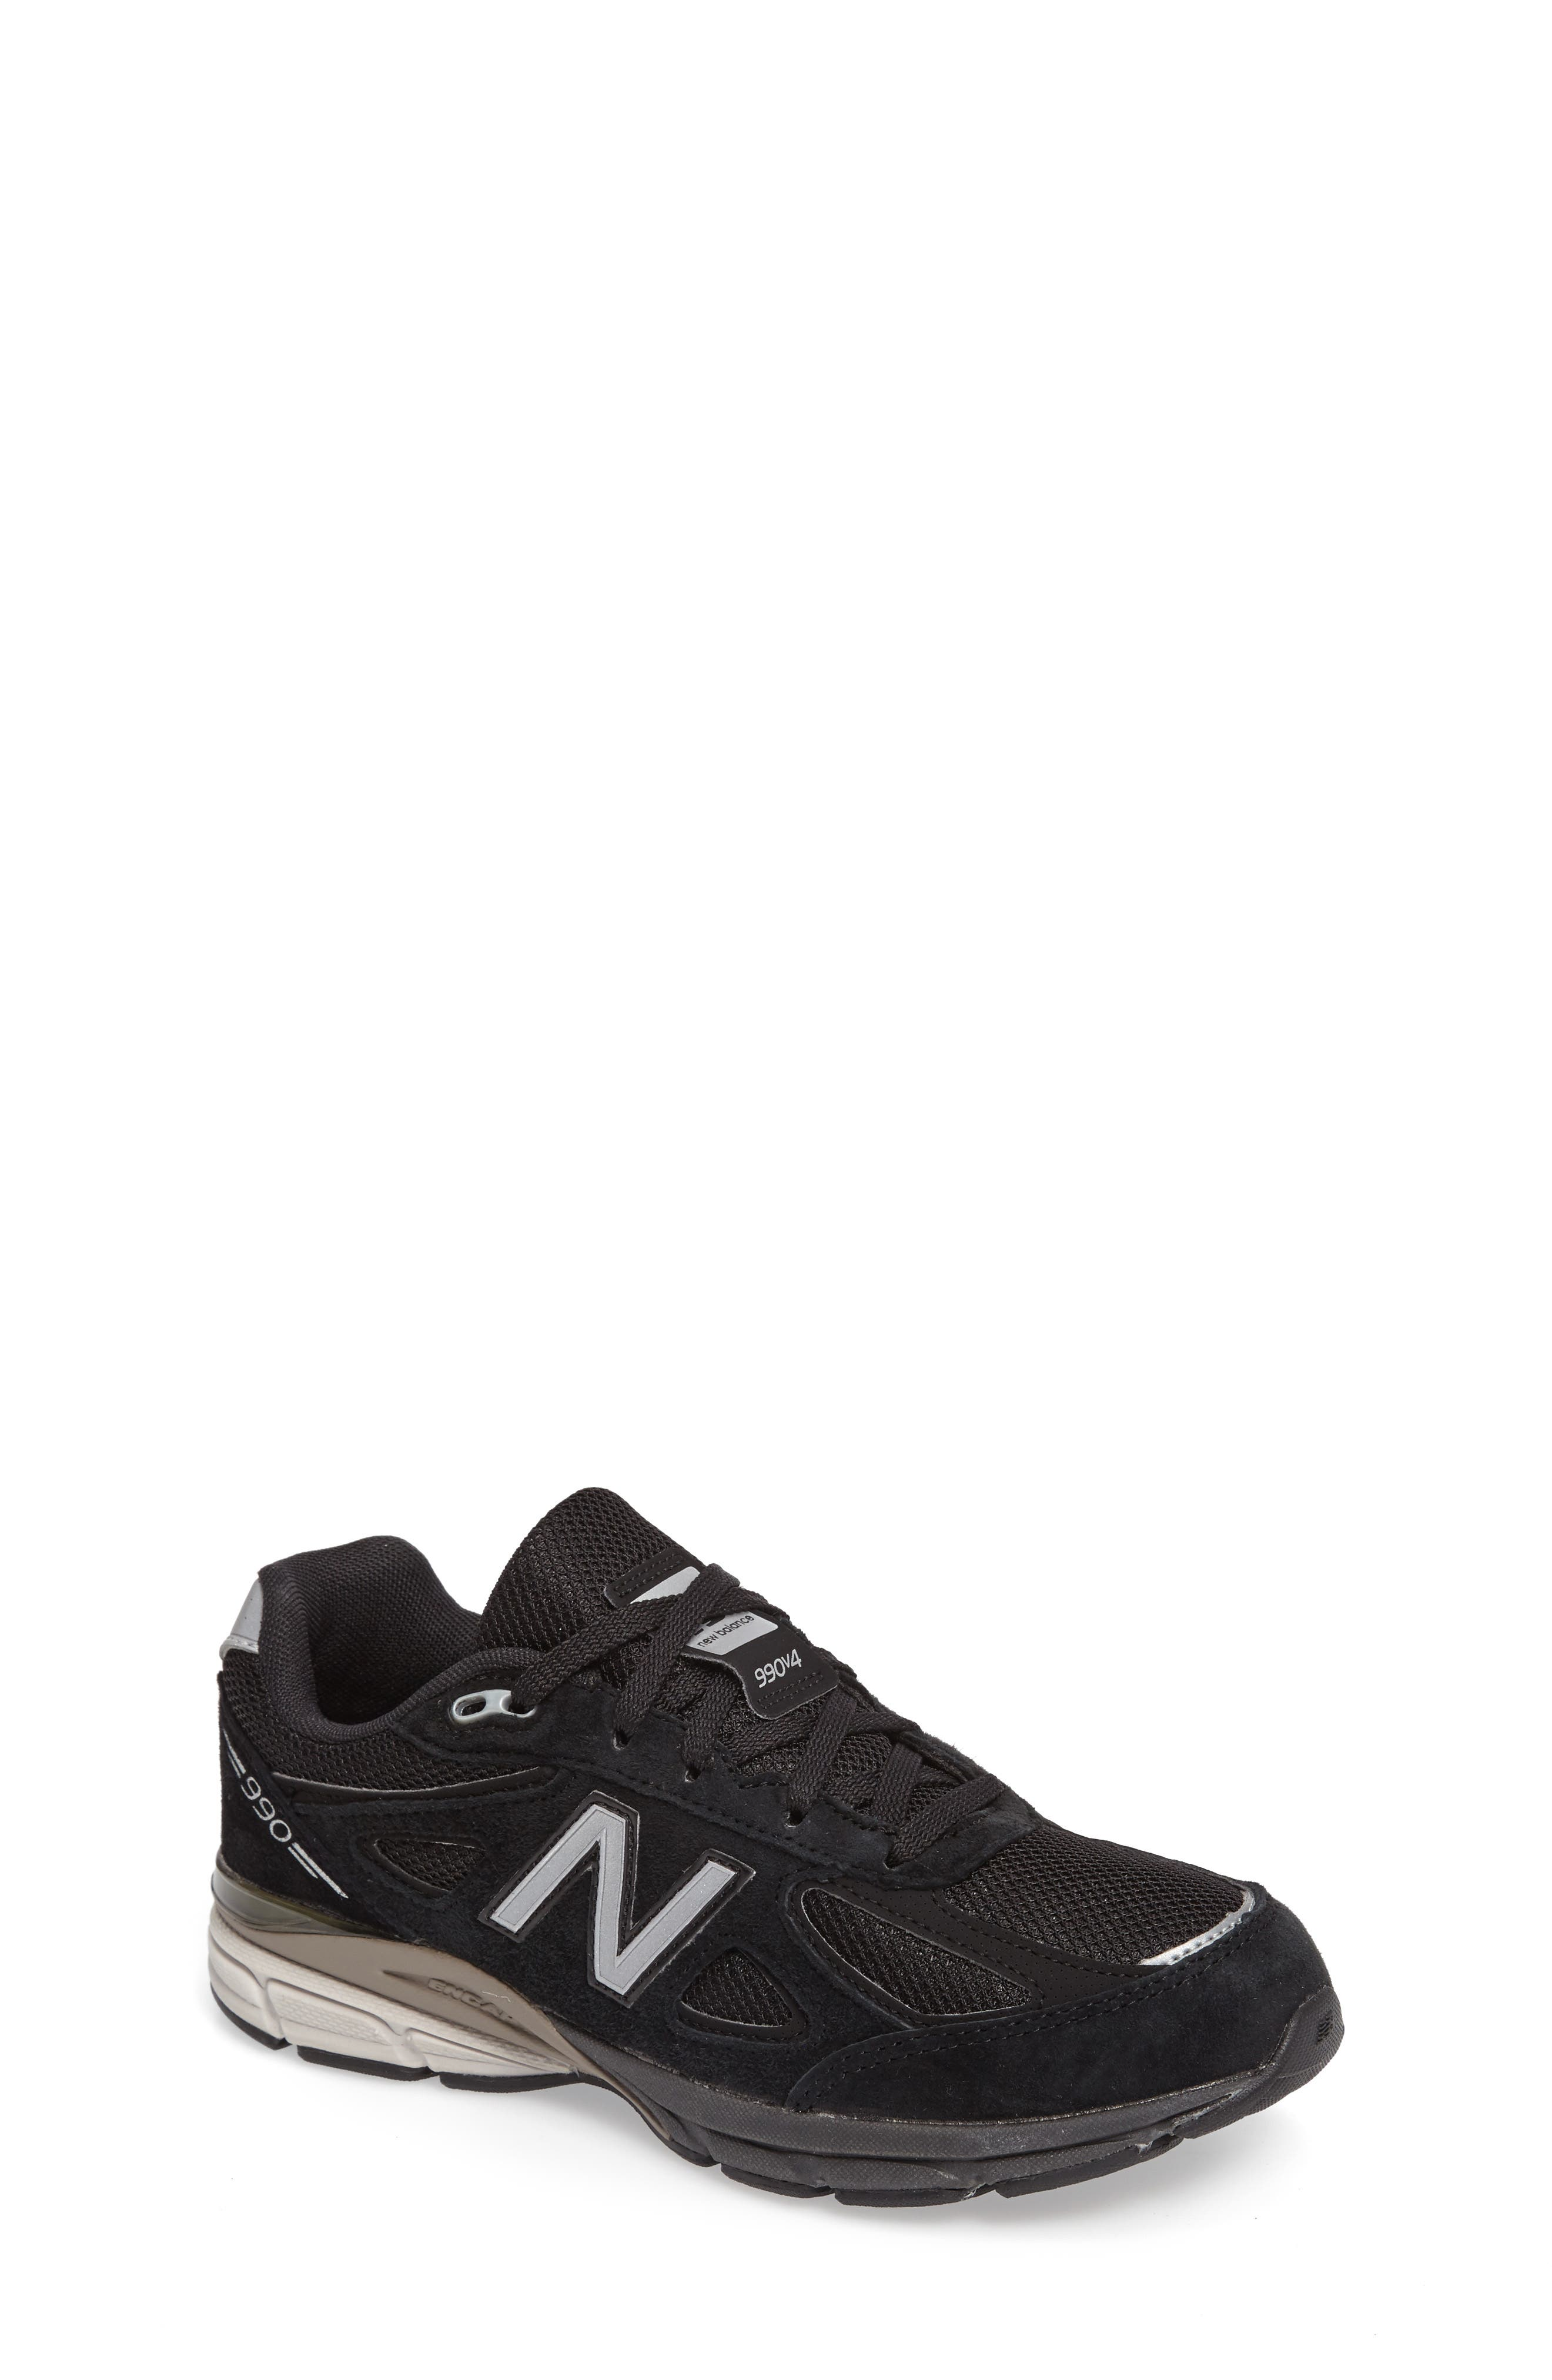 Main Image - New Balance 990v4 Sneaker (Big Kid)